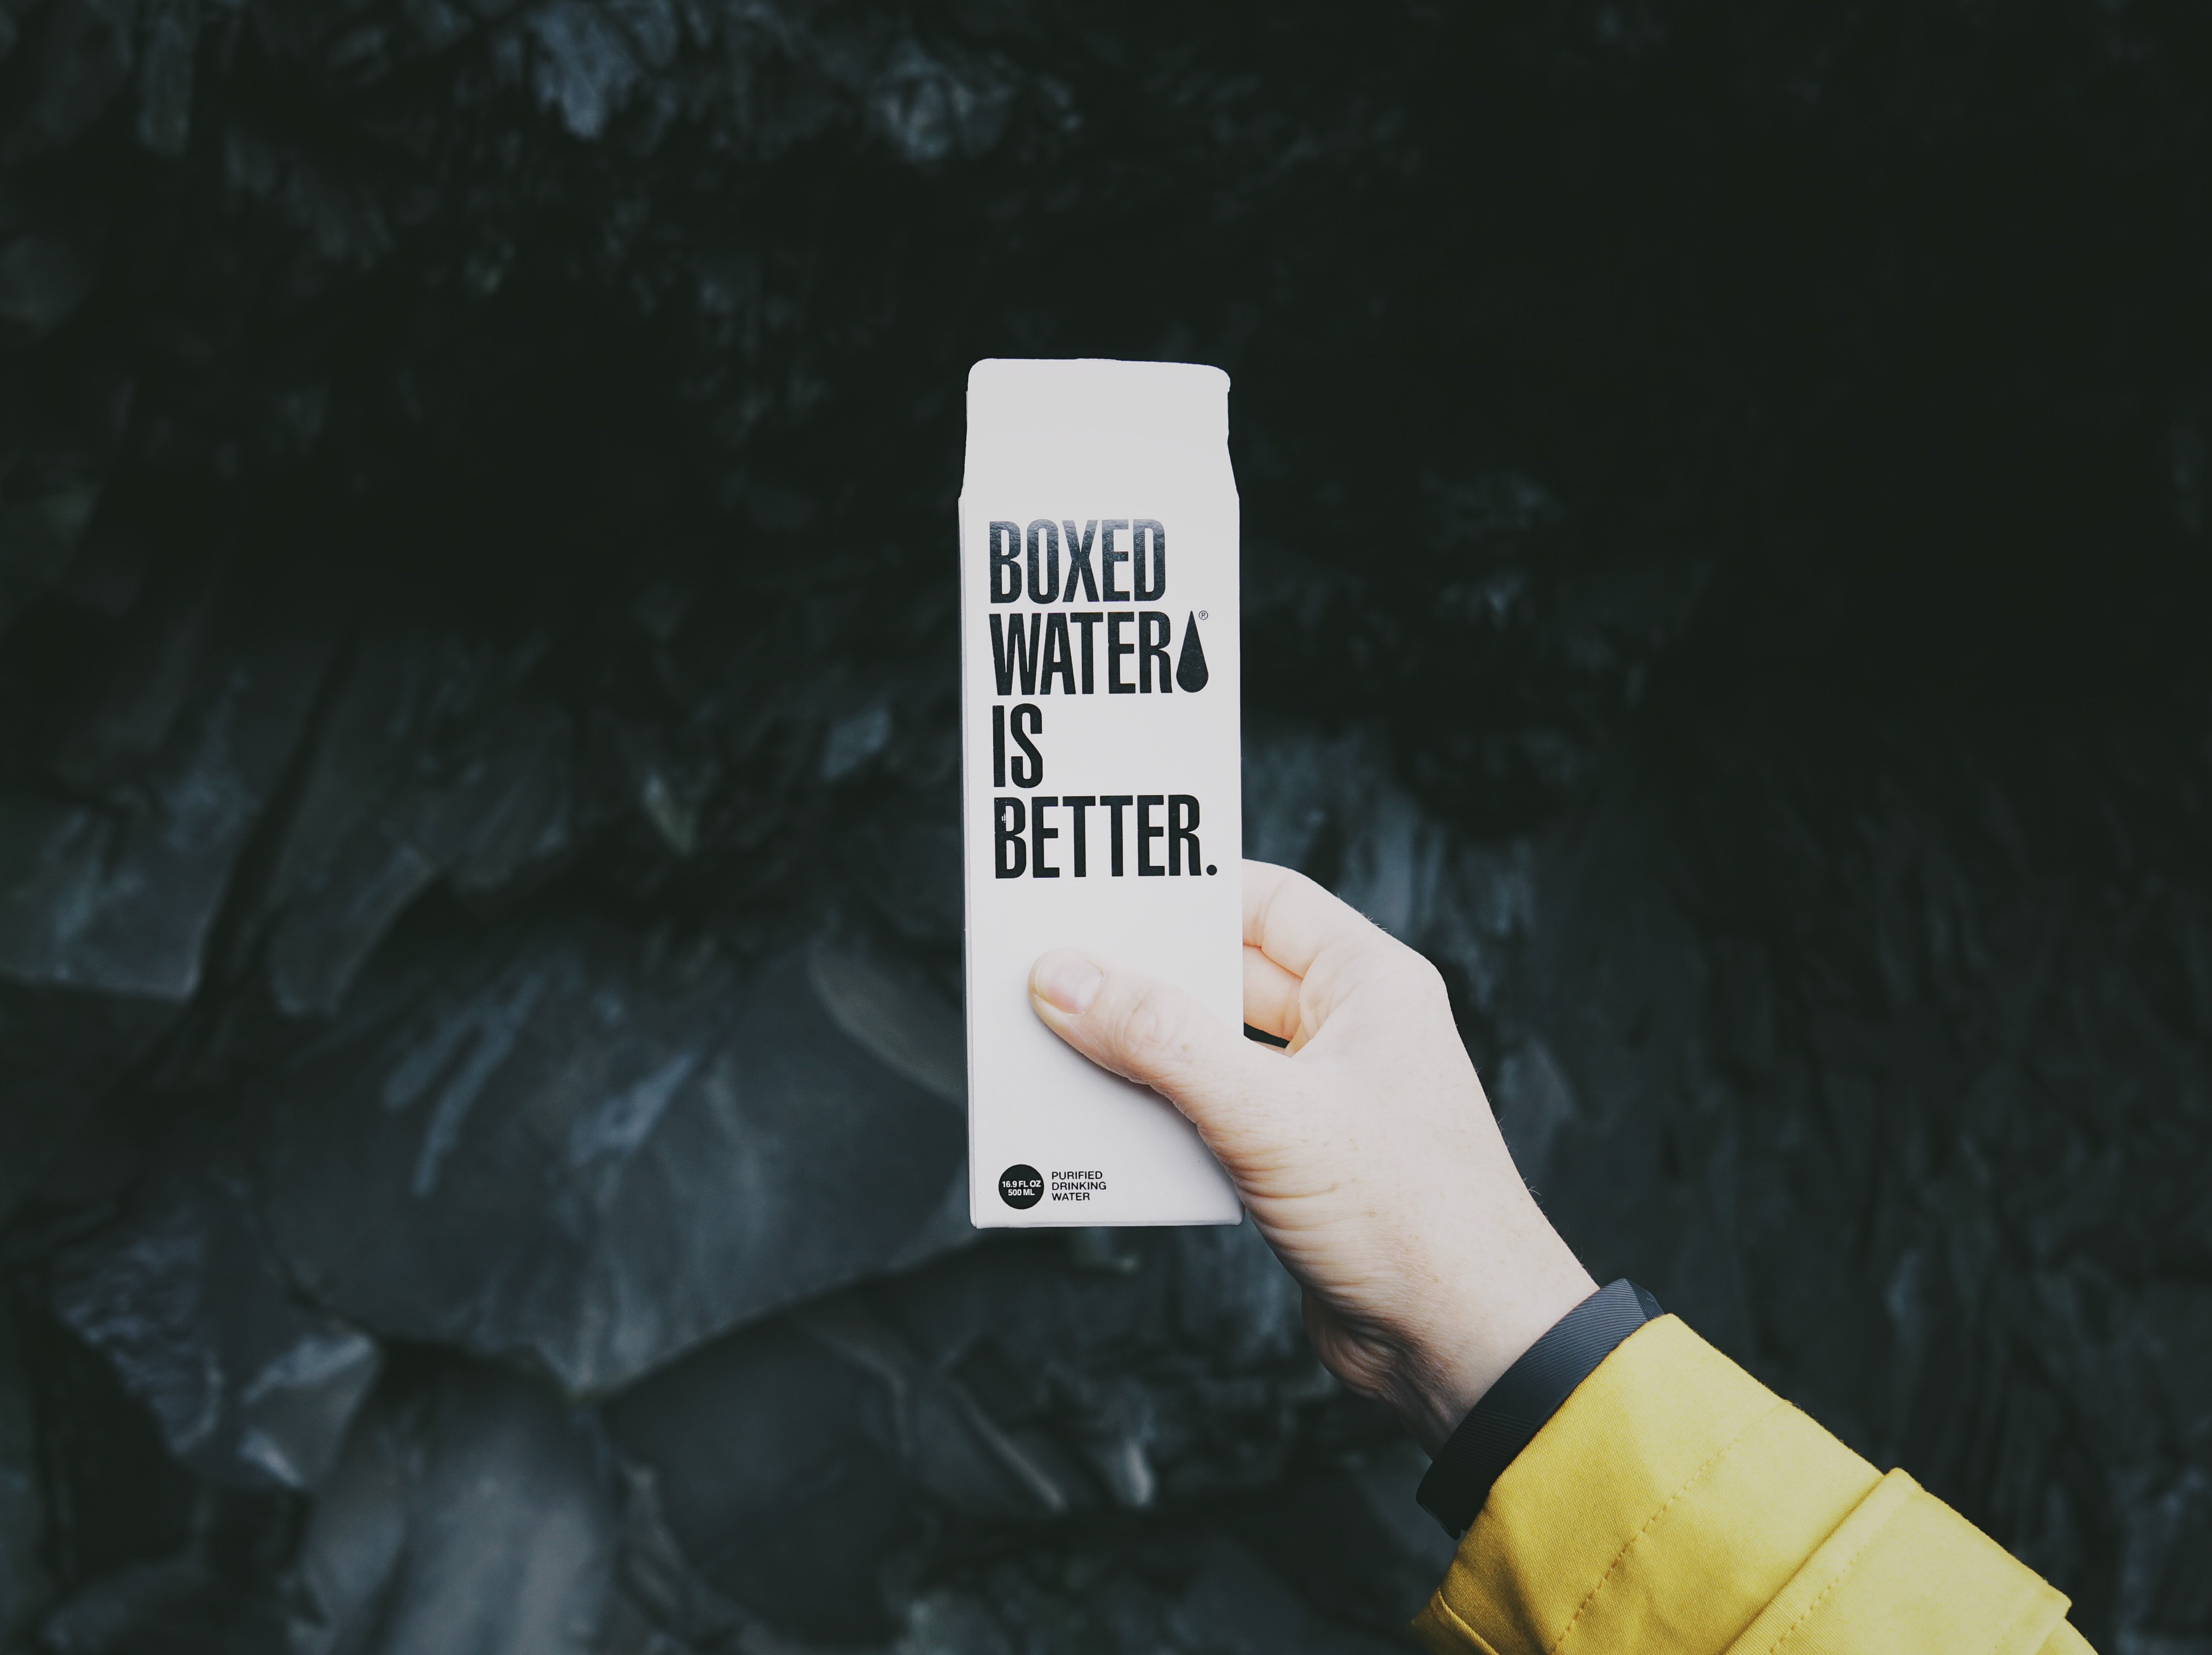 A person holding a white Boxed water is better carton